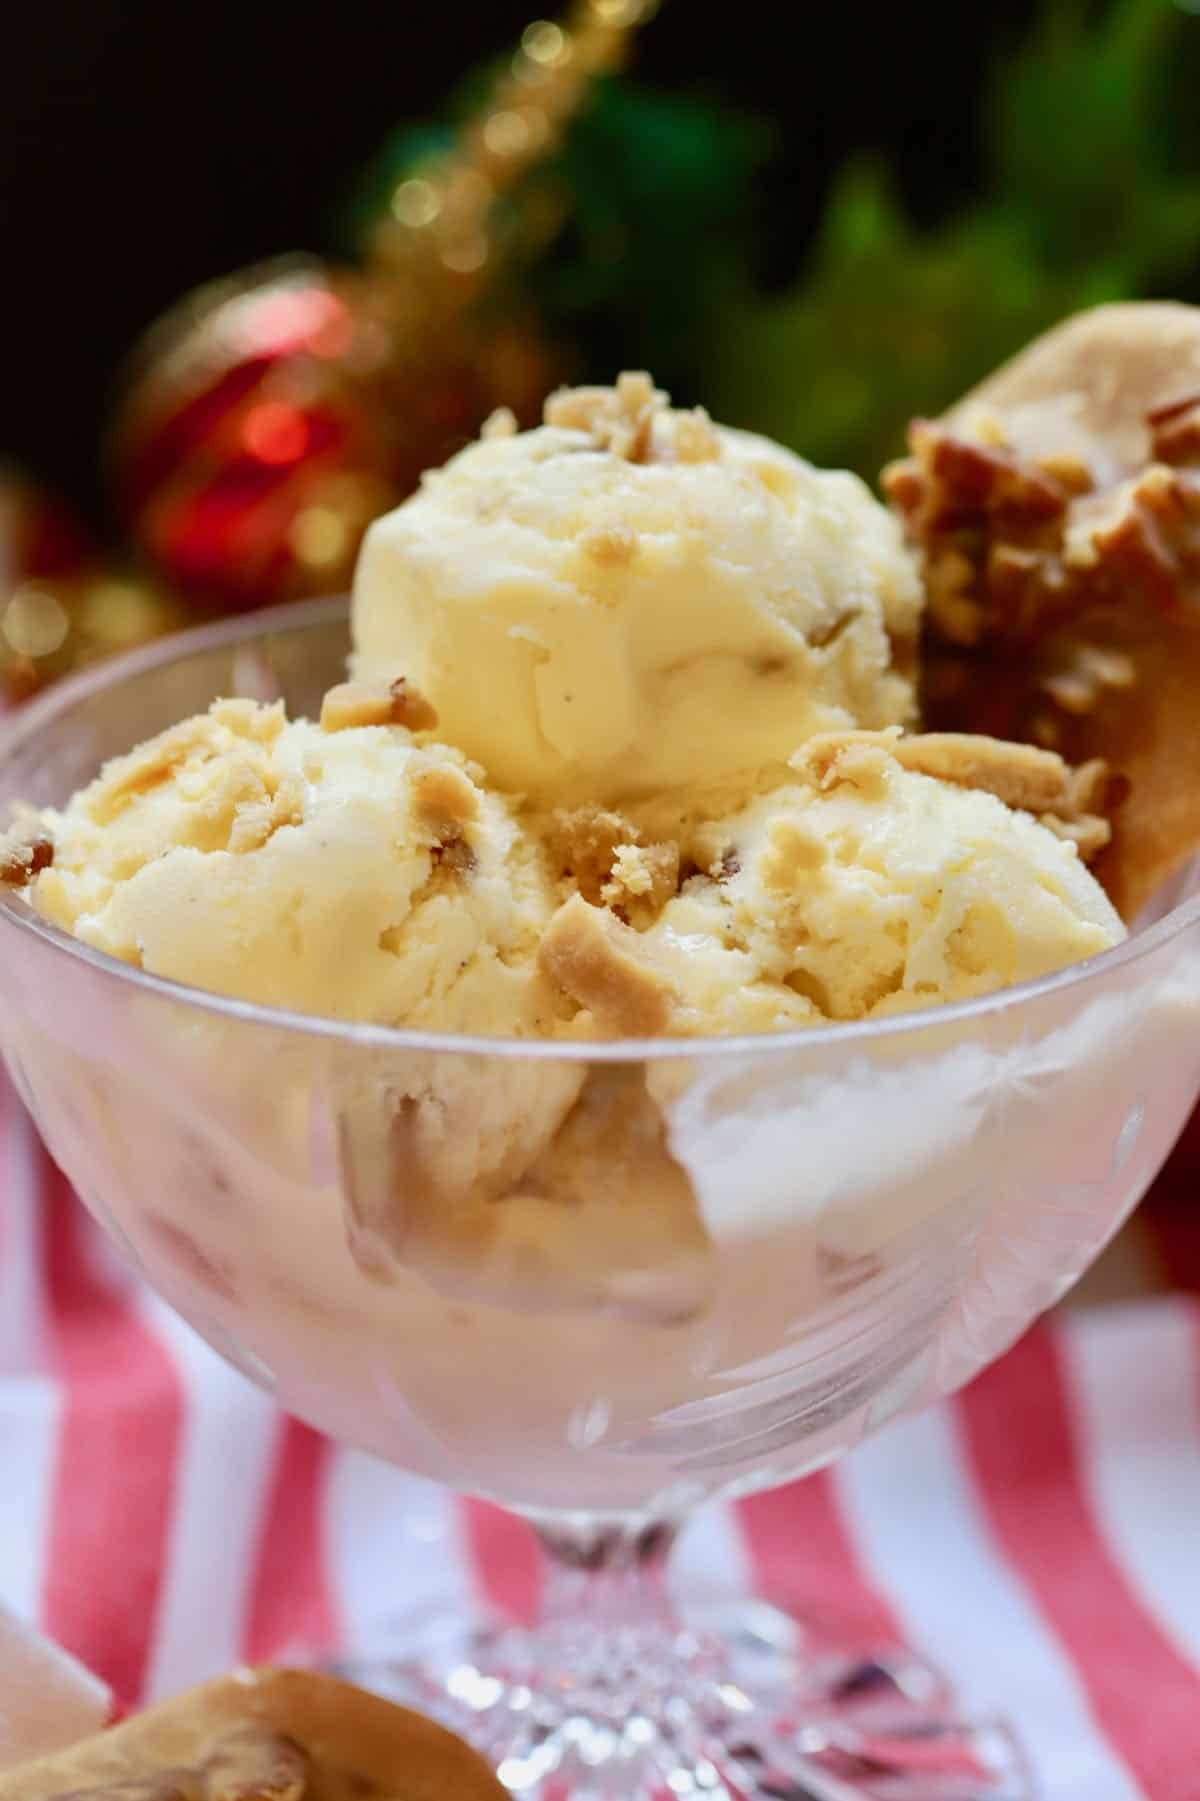 Praline ice cream in a clear glass bowl.